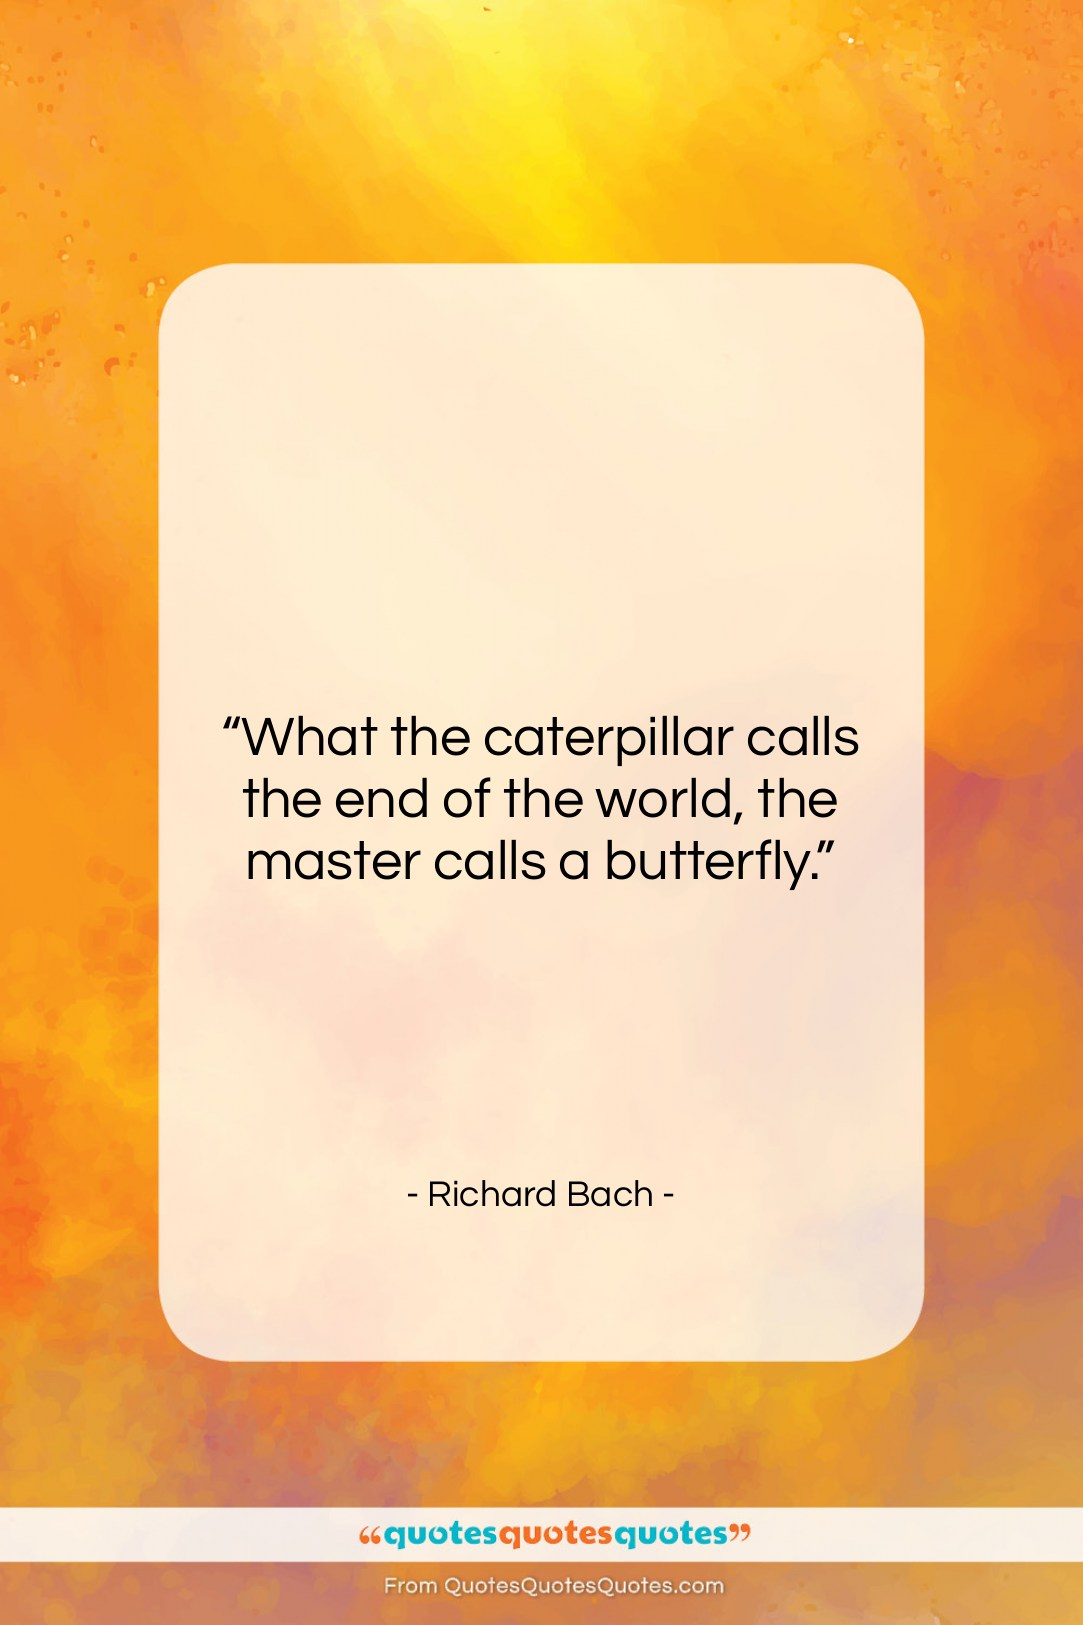 Get The Whole Richard Bach Quote What The Caterpillar Calls The